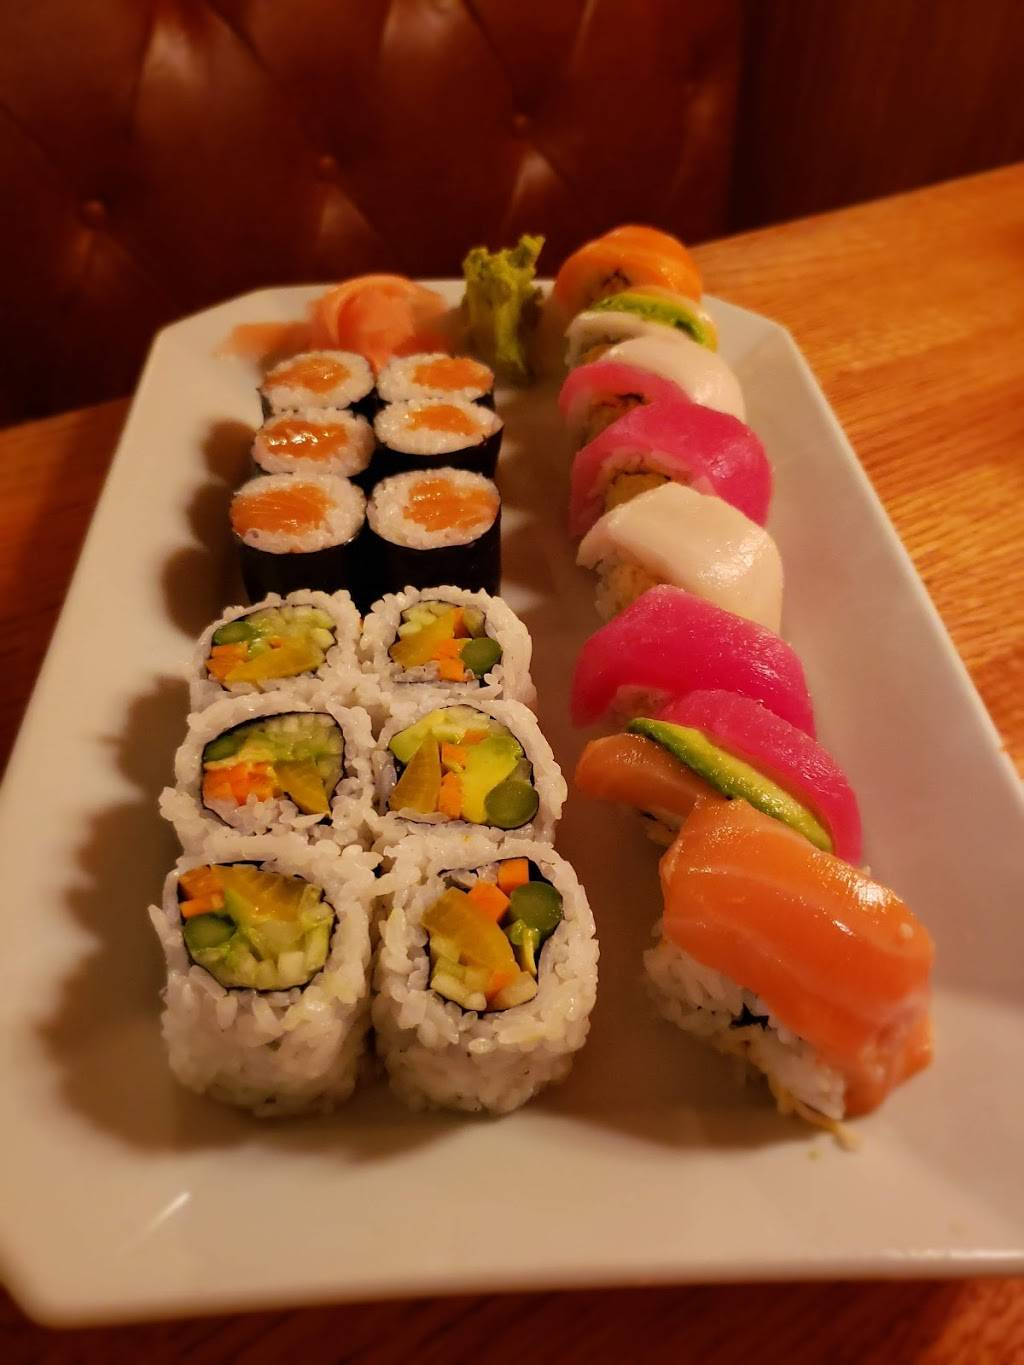 Fuji Cafe | cafe | 875 W Poplar Ave #19, Collierville, TN 38017, USA | 9018547758 OR +1 901-854-7758